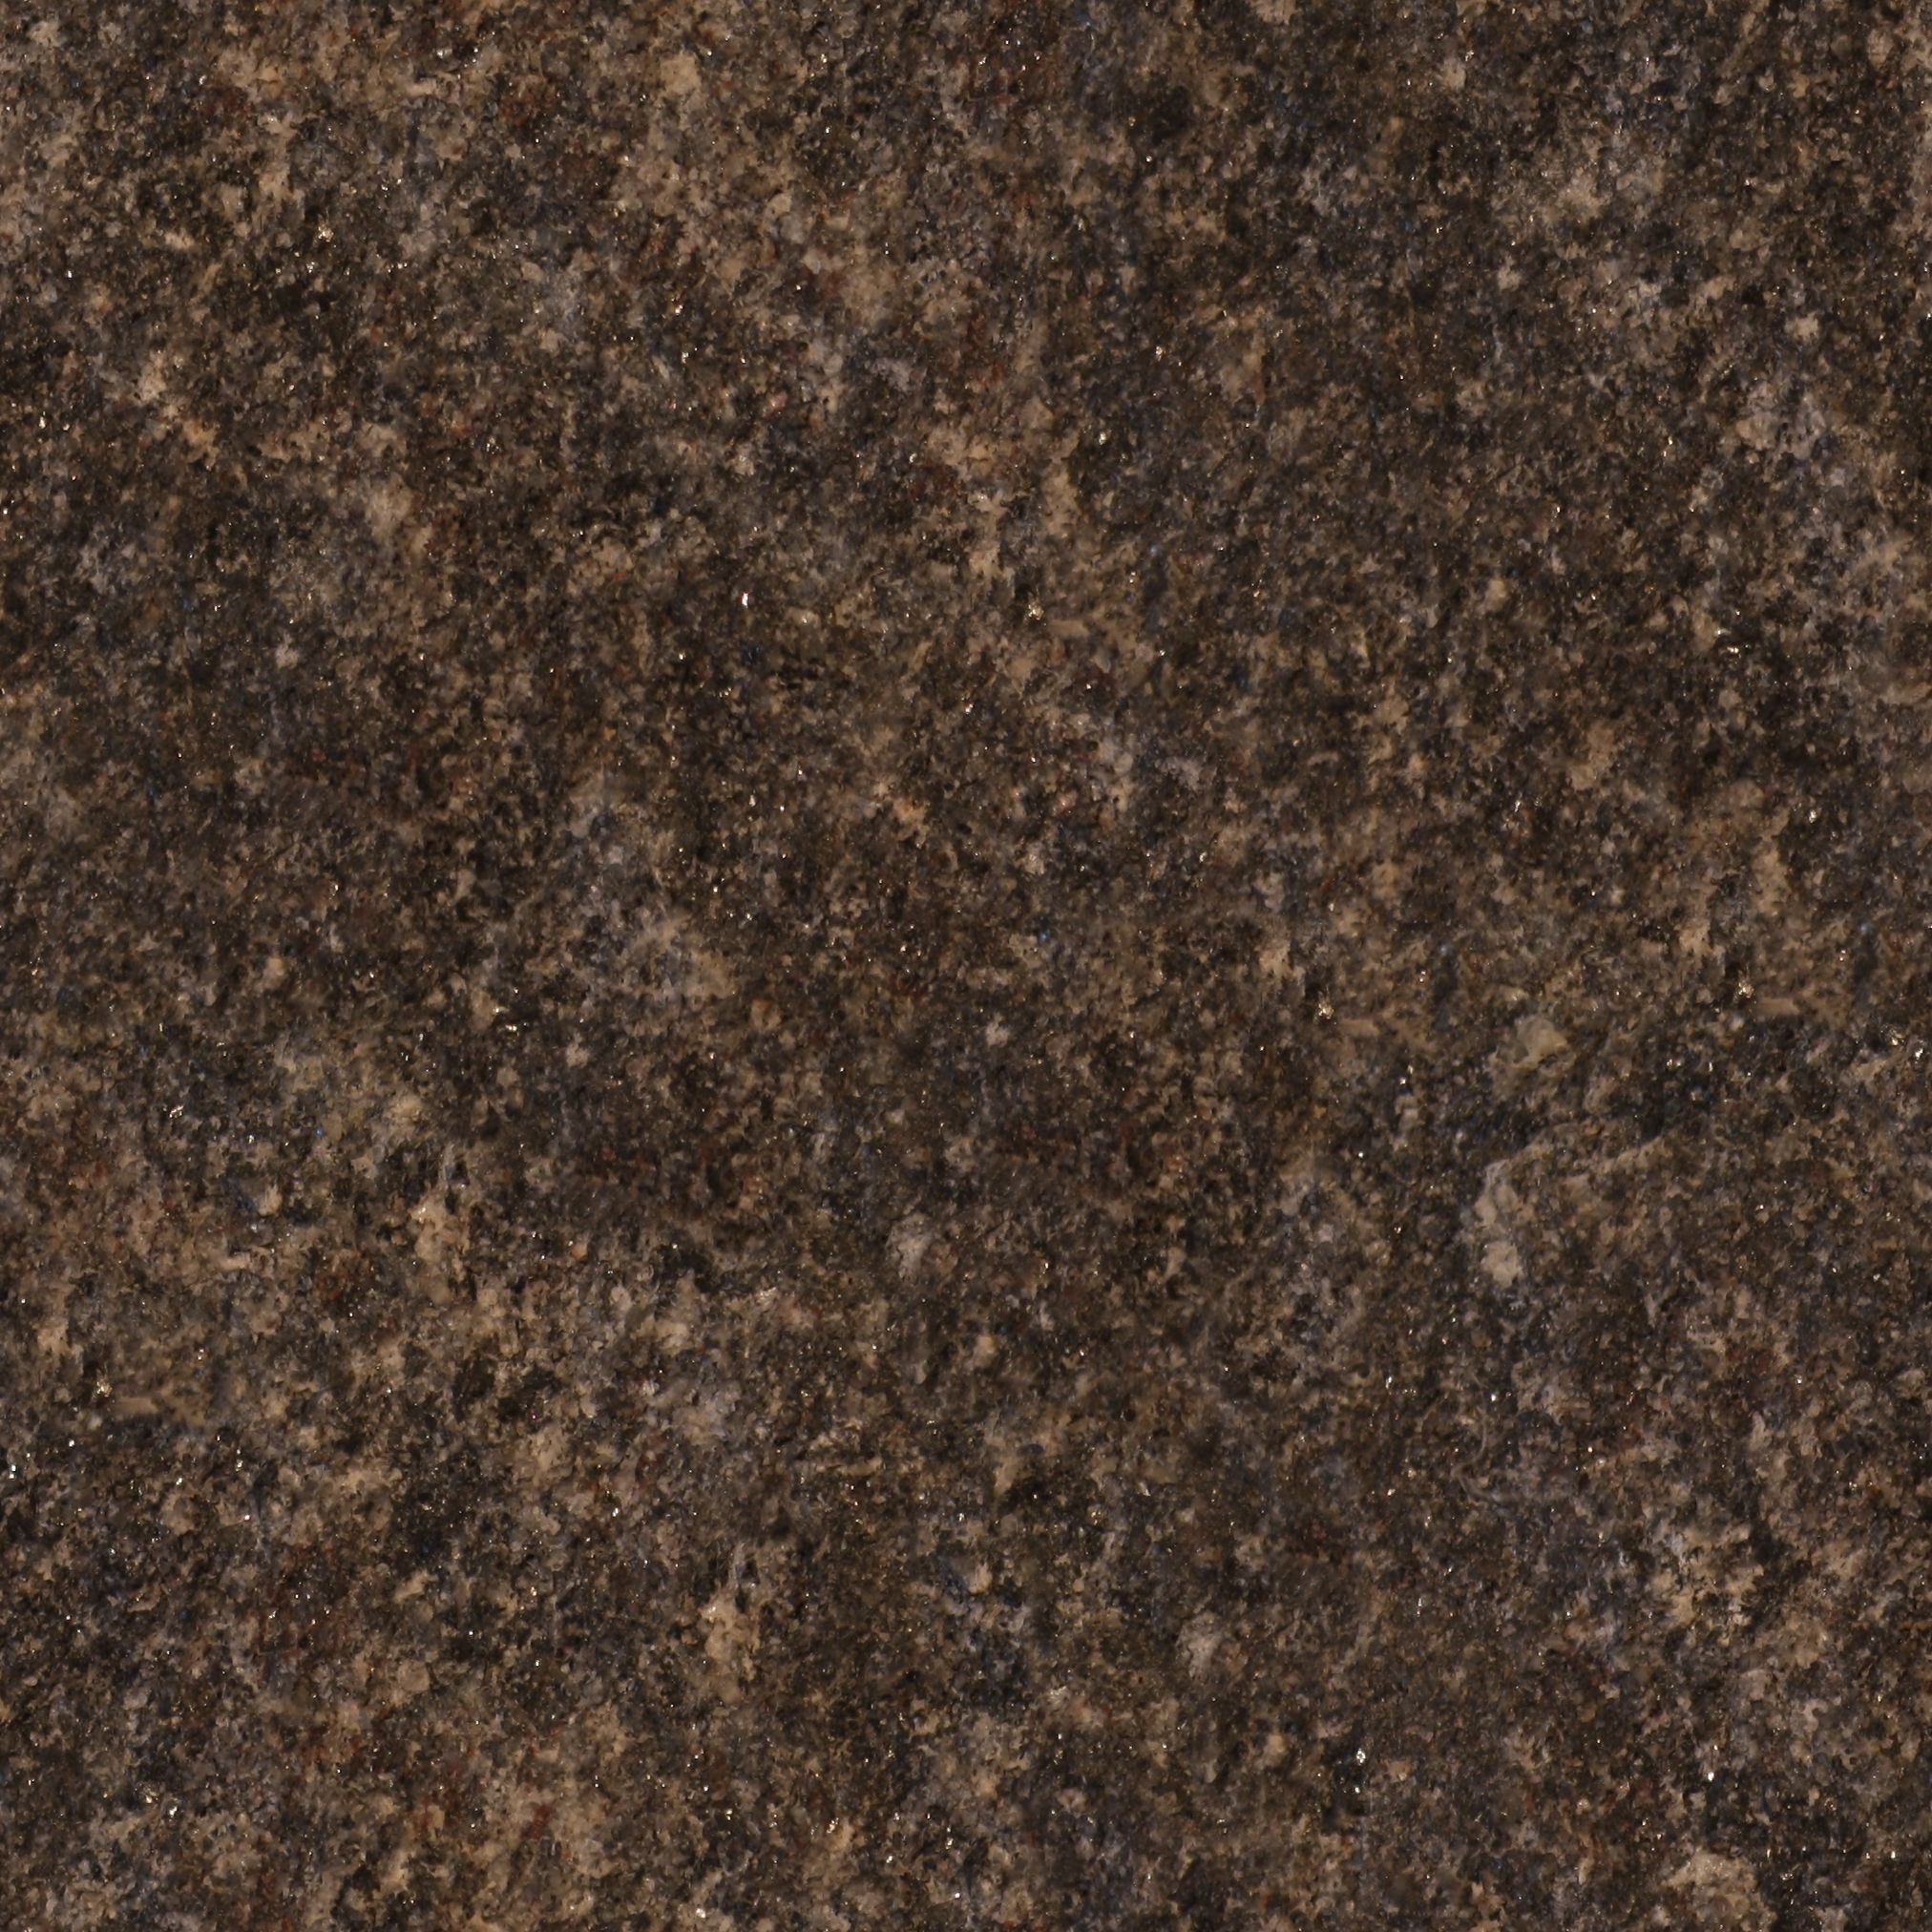 Textured Granite Countertops Zero Cc Tileable Brown Granite Texture Photographed And